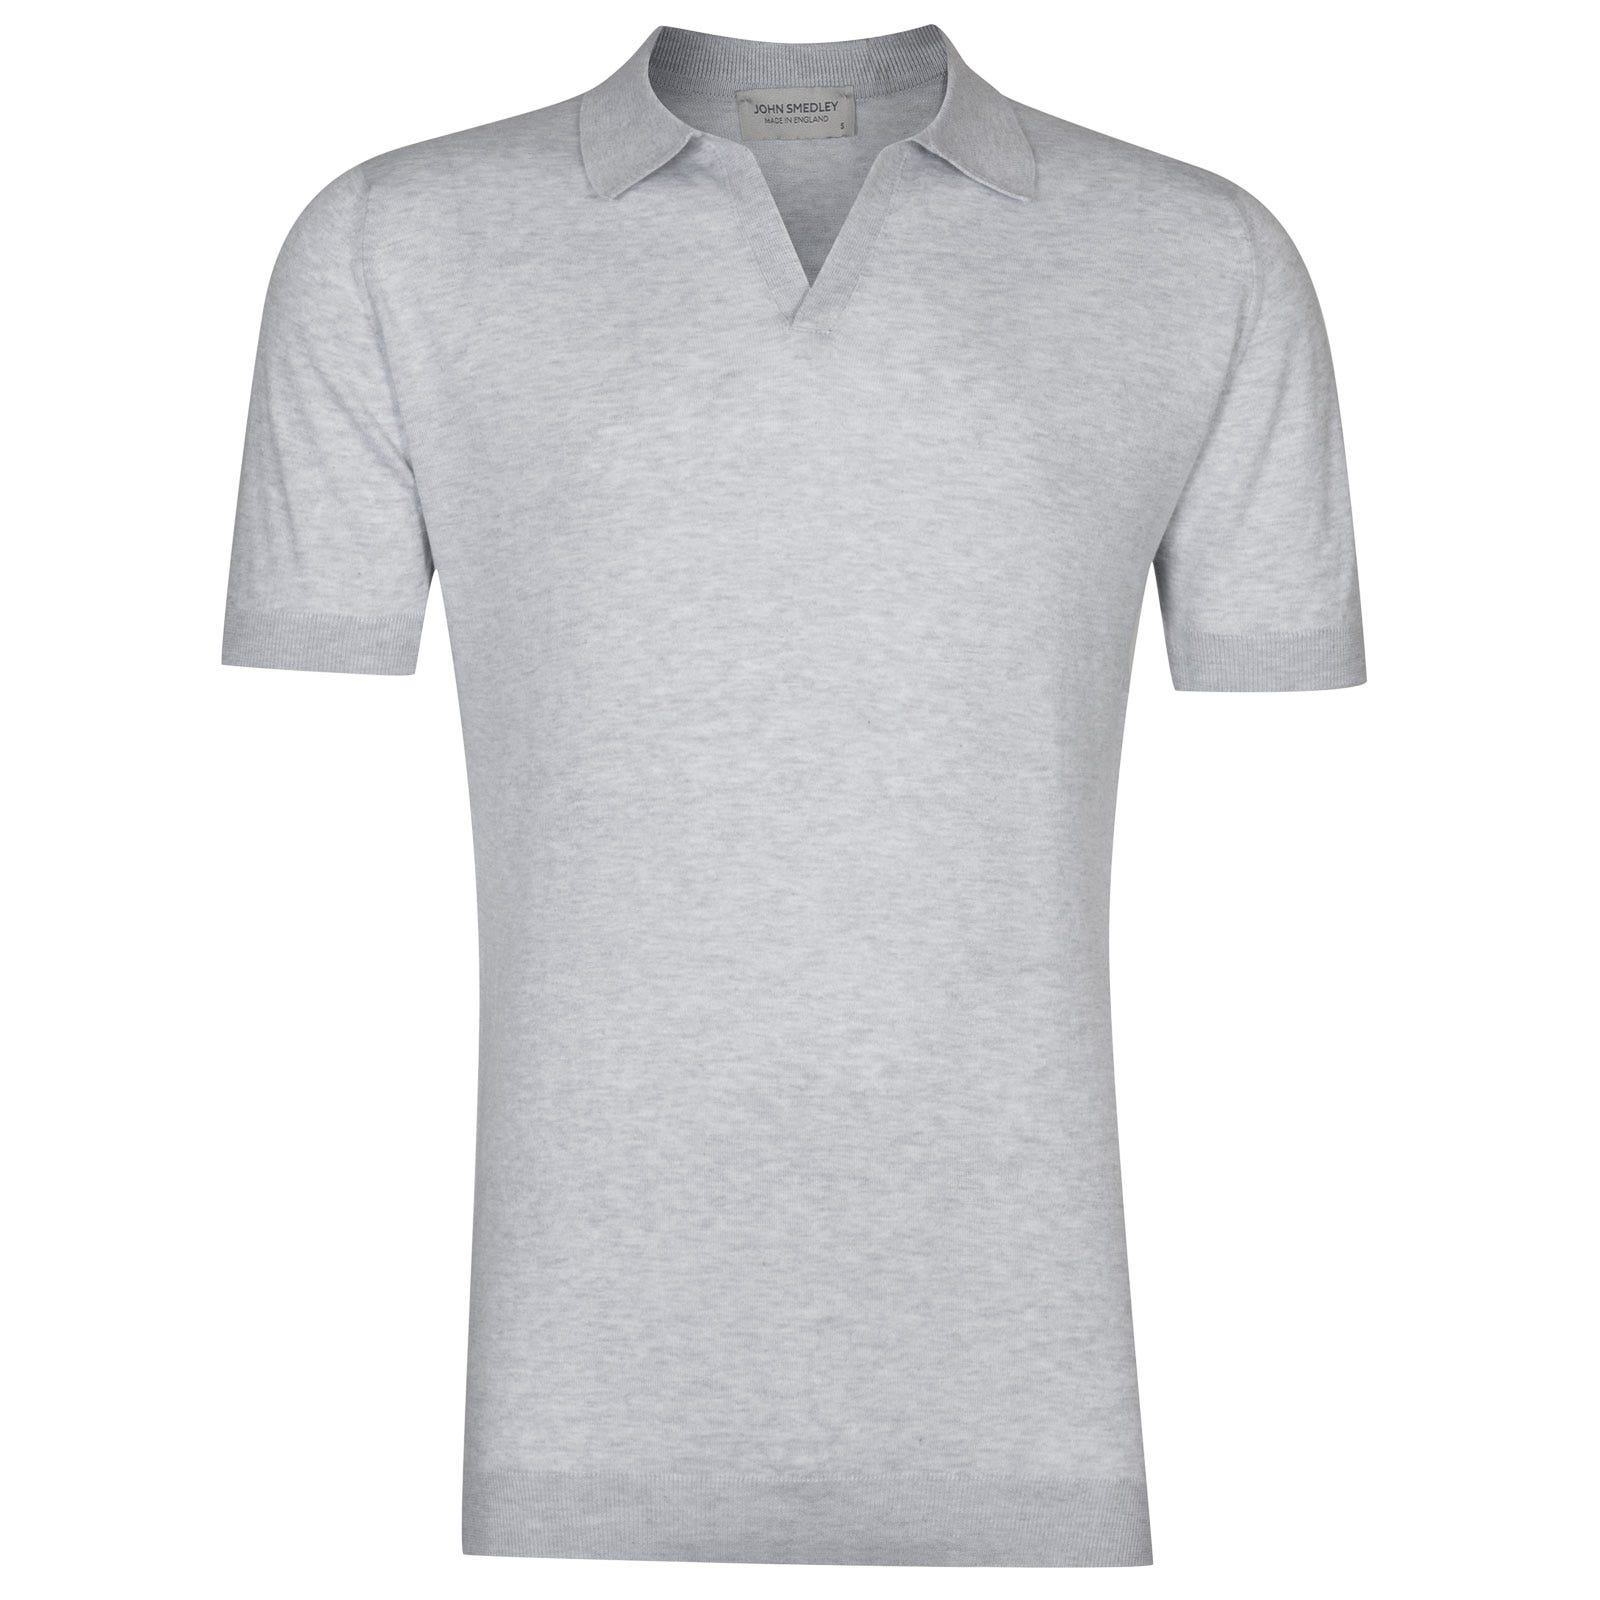 John Smedley Noah Sea Island Cotton Shirt in Feather Grey-S